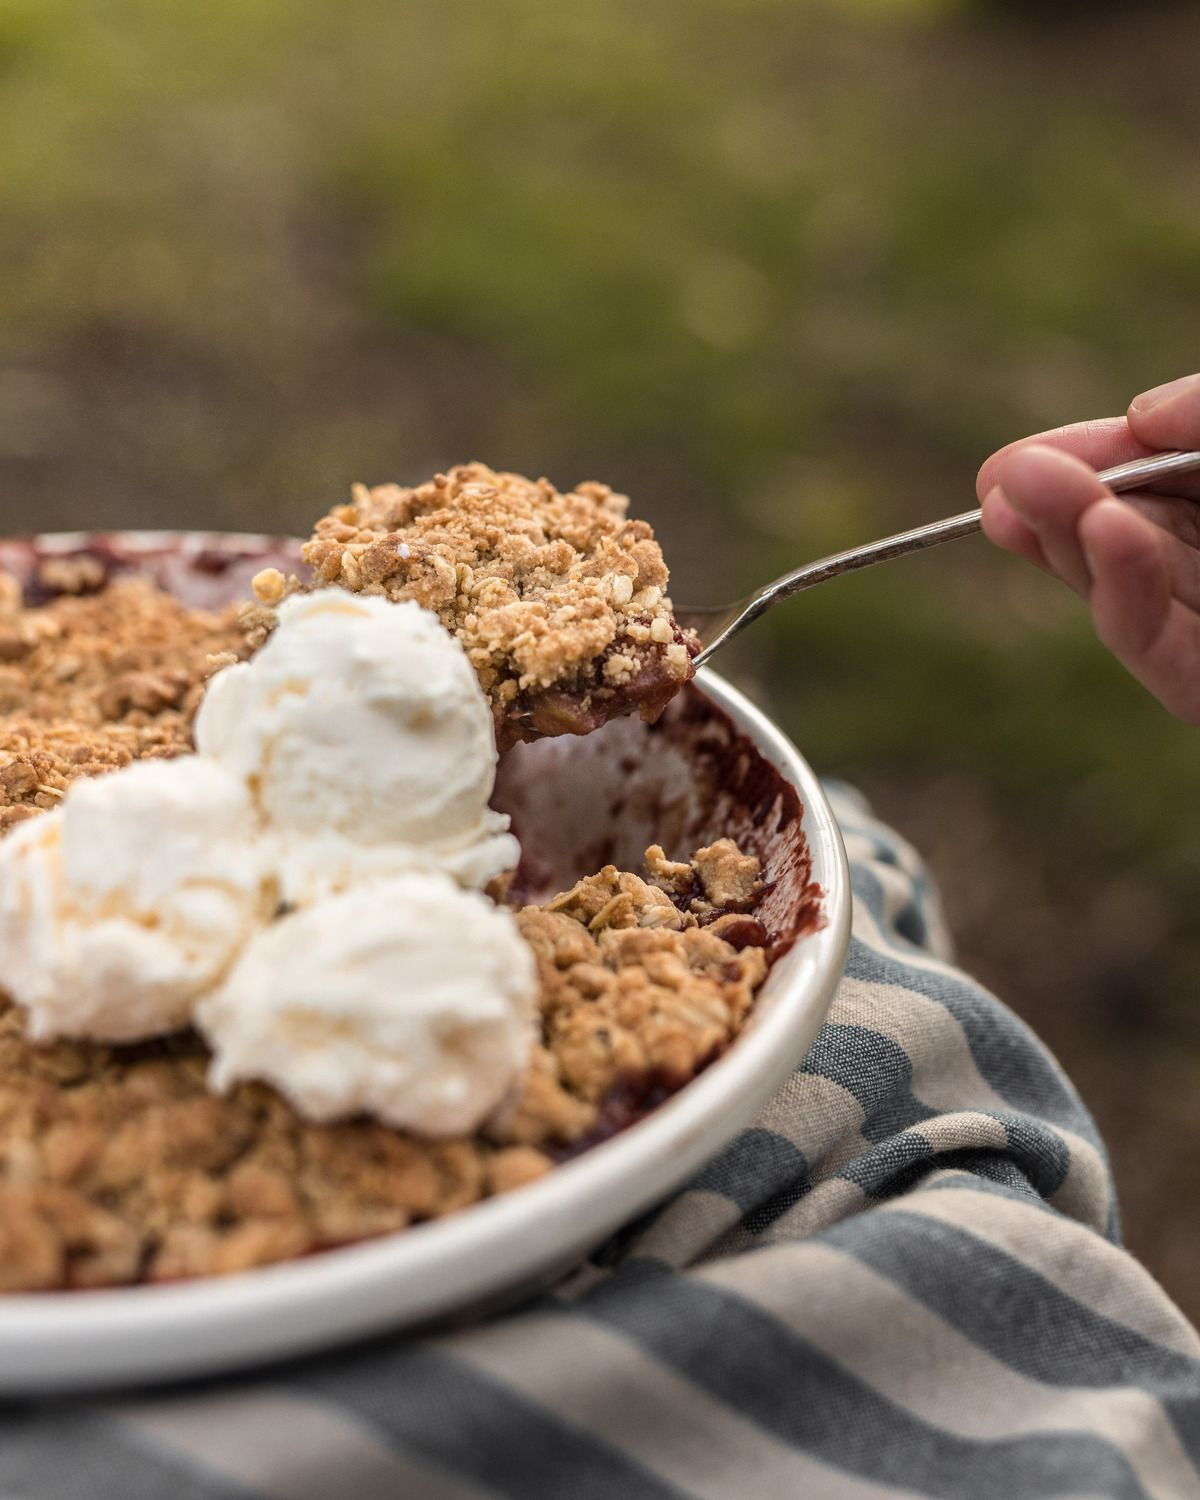 Plum + Apple Crumble topped with cream being spooned out to serve